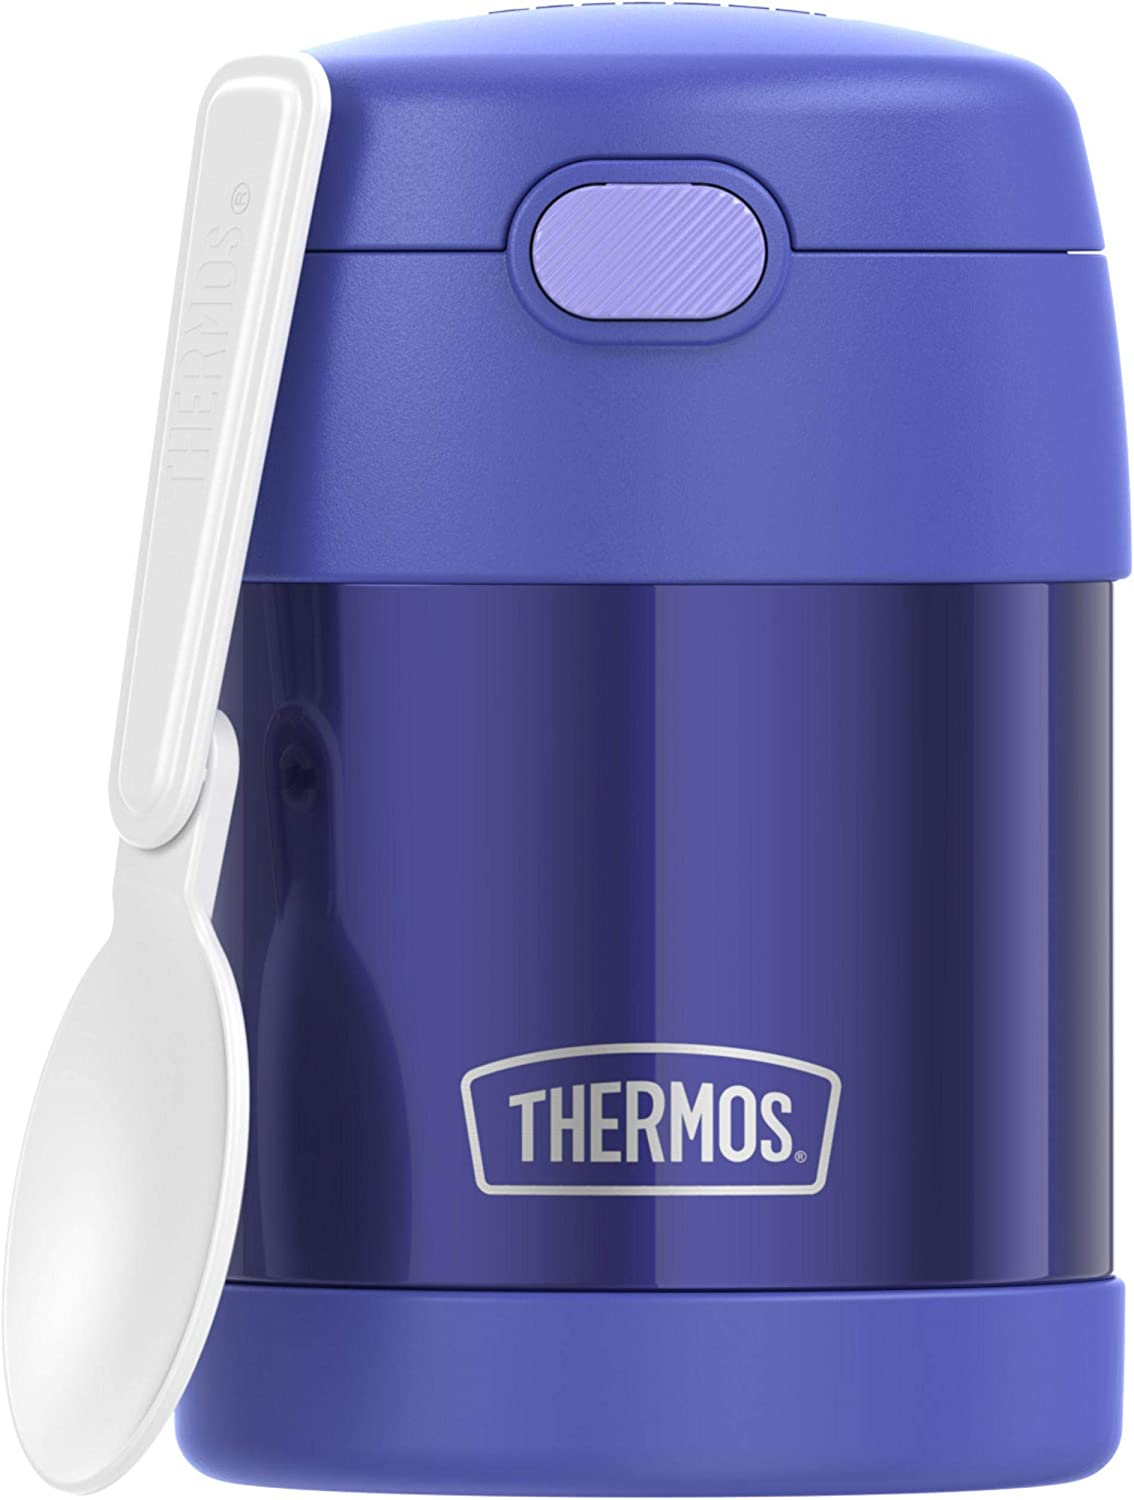 THERMOS FUNTAINER 10 Ounce Stainless Steel Kids Food Jar, Purple